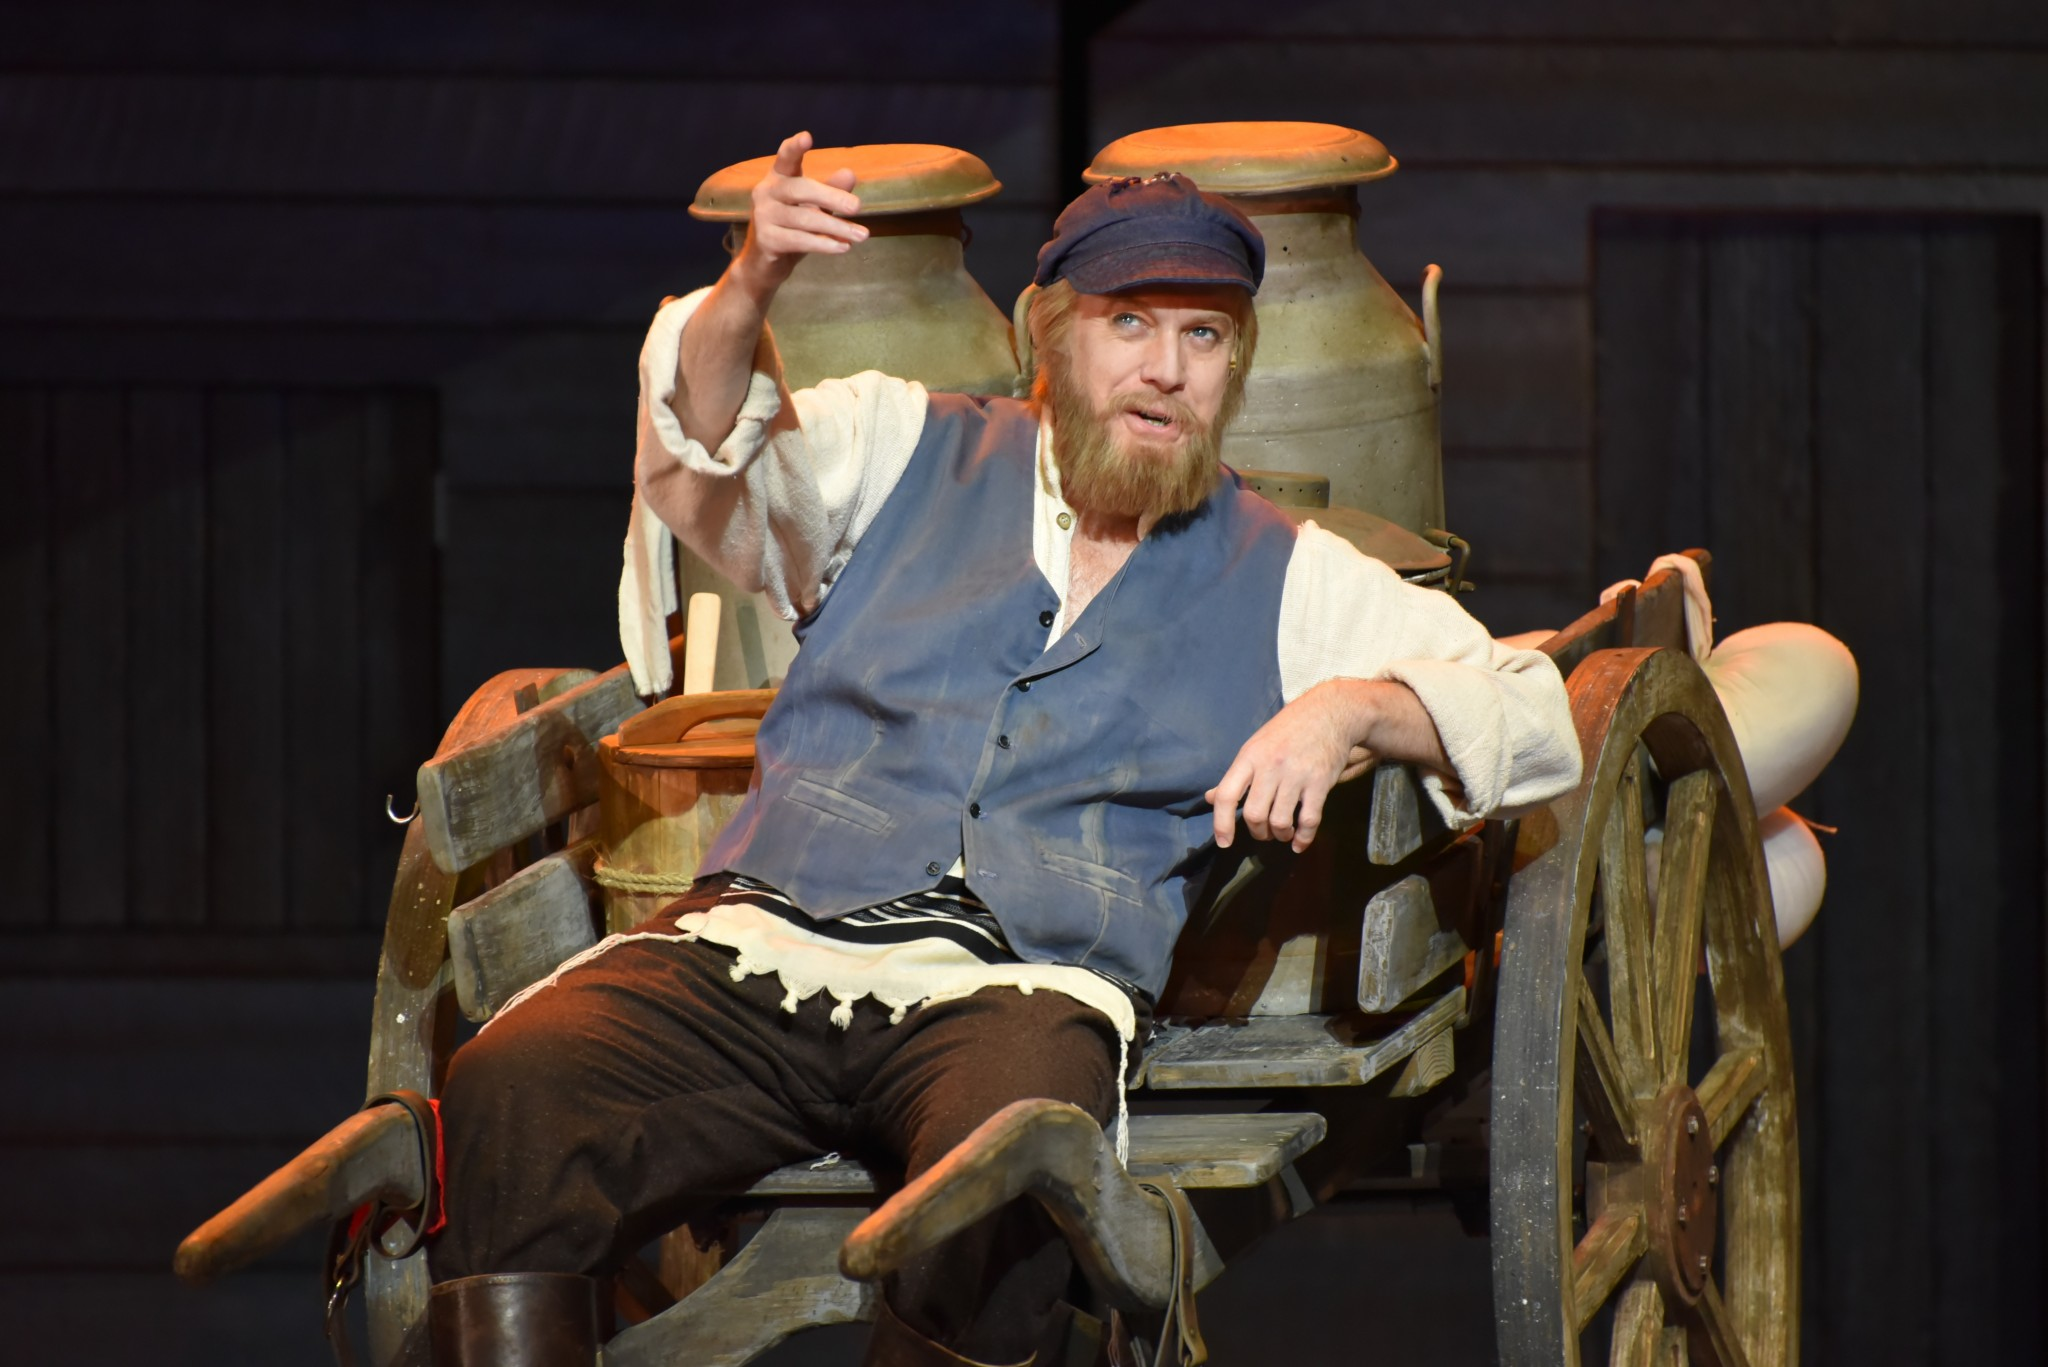 Anthony Warlow - Fiddler on the roof musical